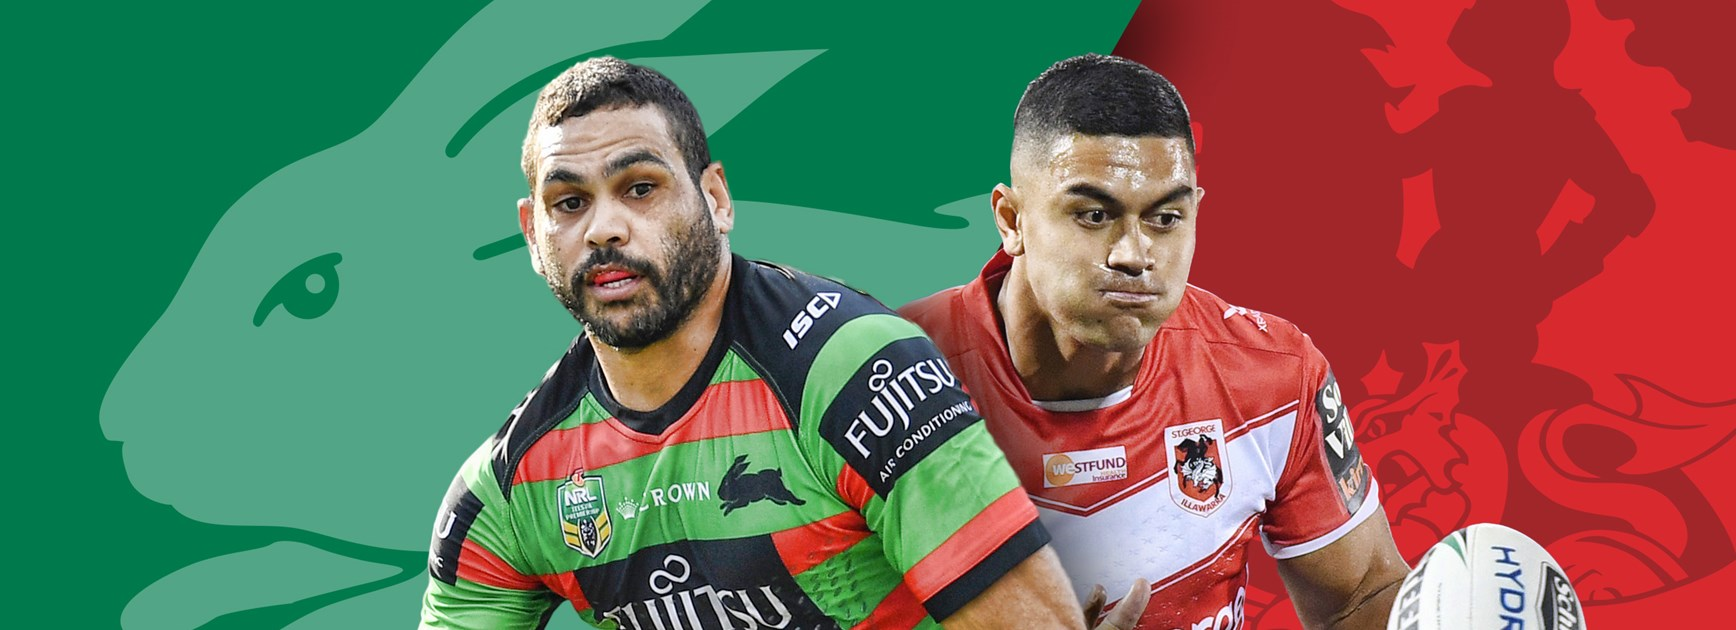 Rabbitohs v Dragons: De Belin on track, Souths duo cleared